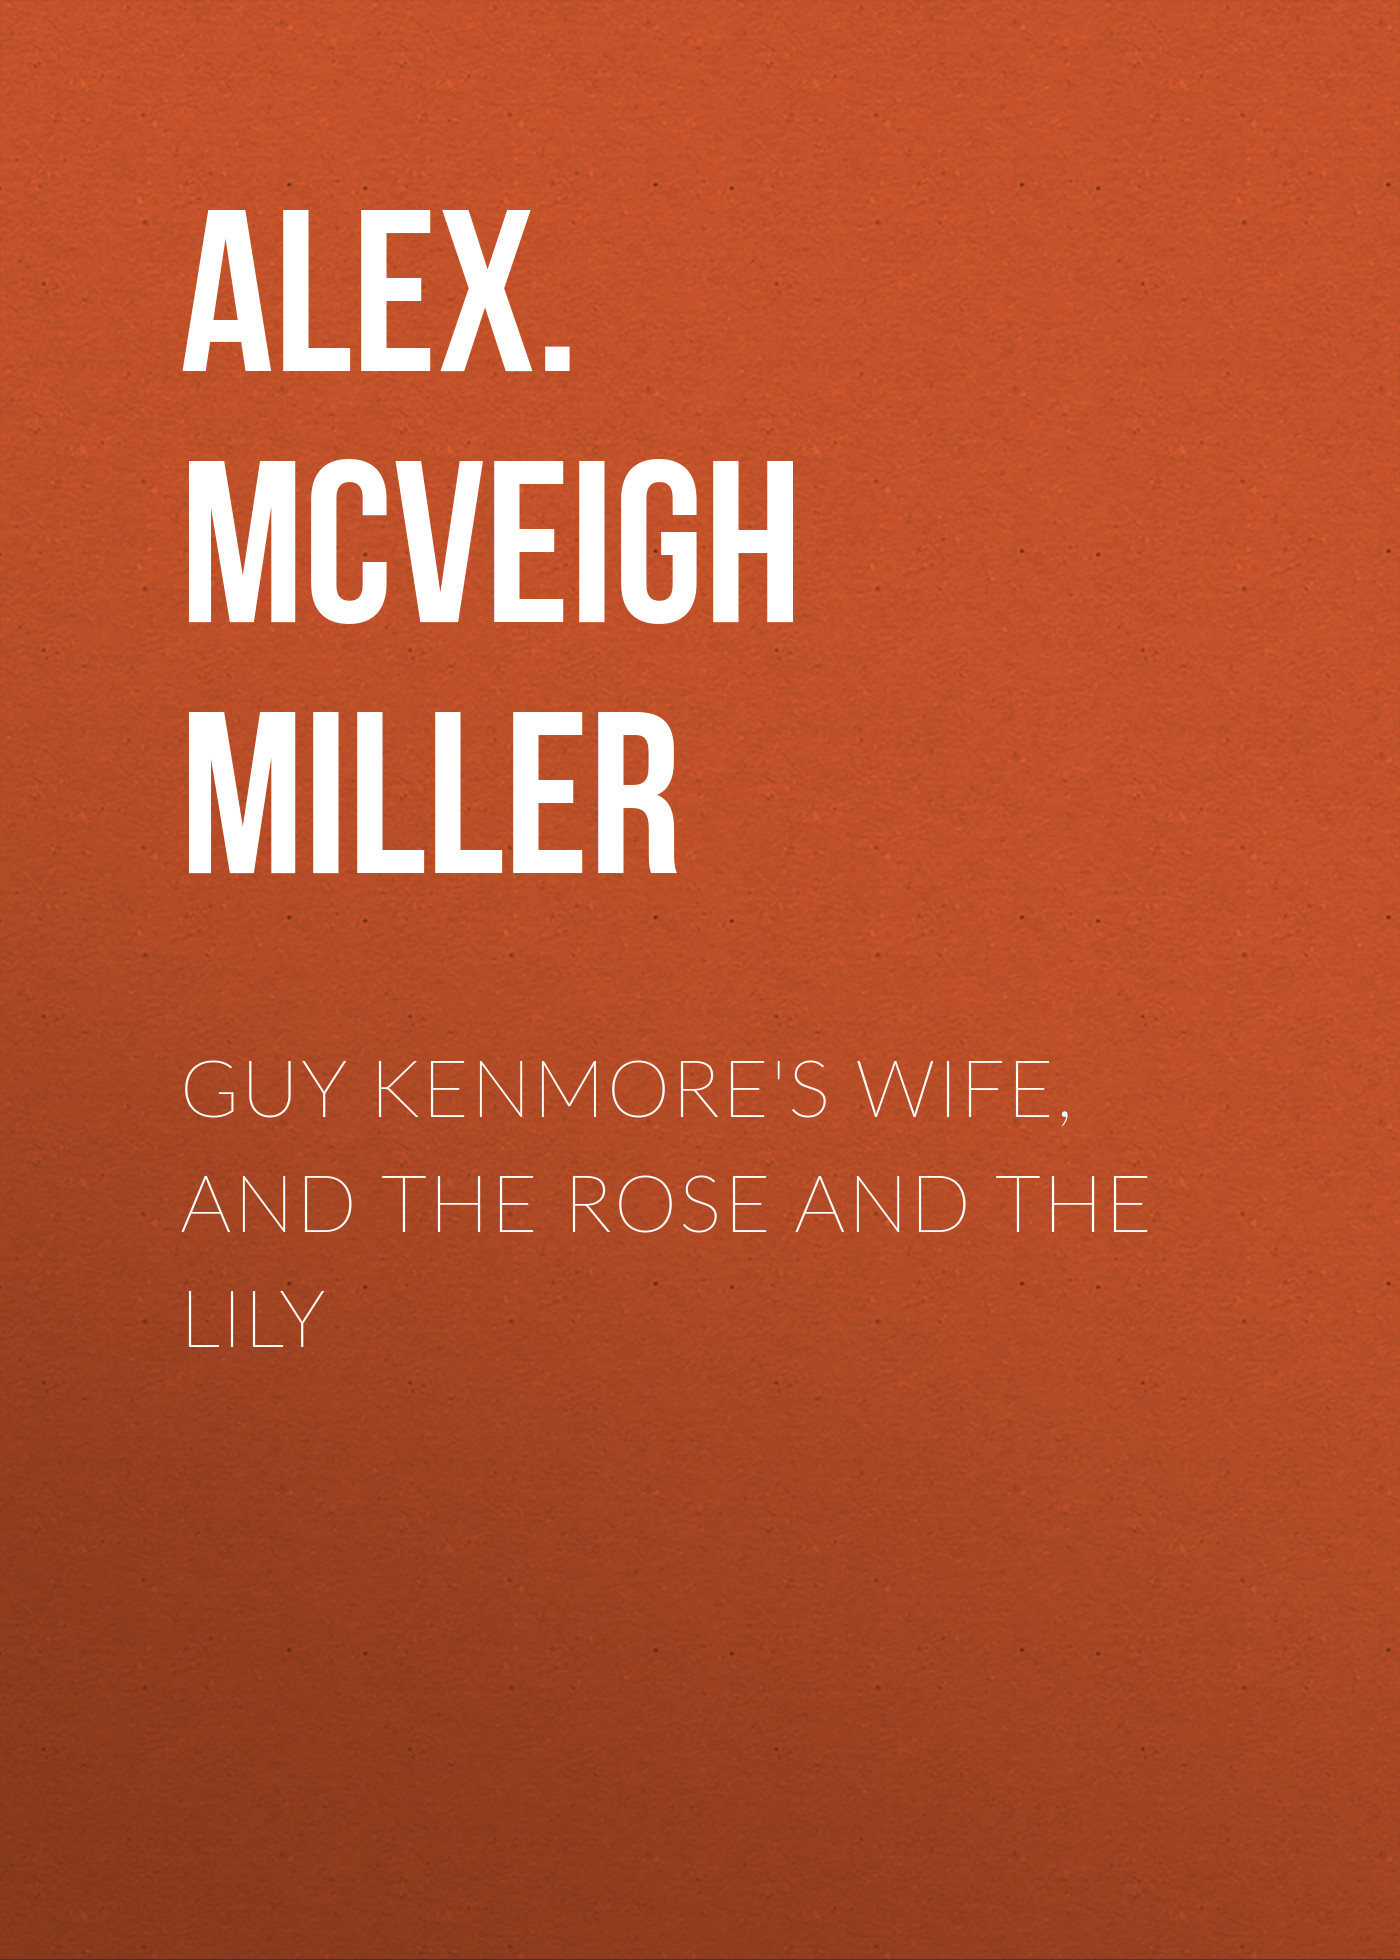 Alex. McVeigh Miller Guy Kenmore's Wife, and The Rose and the Lily